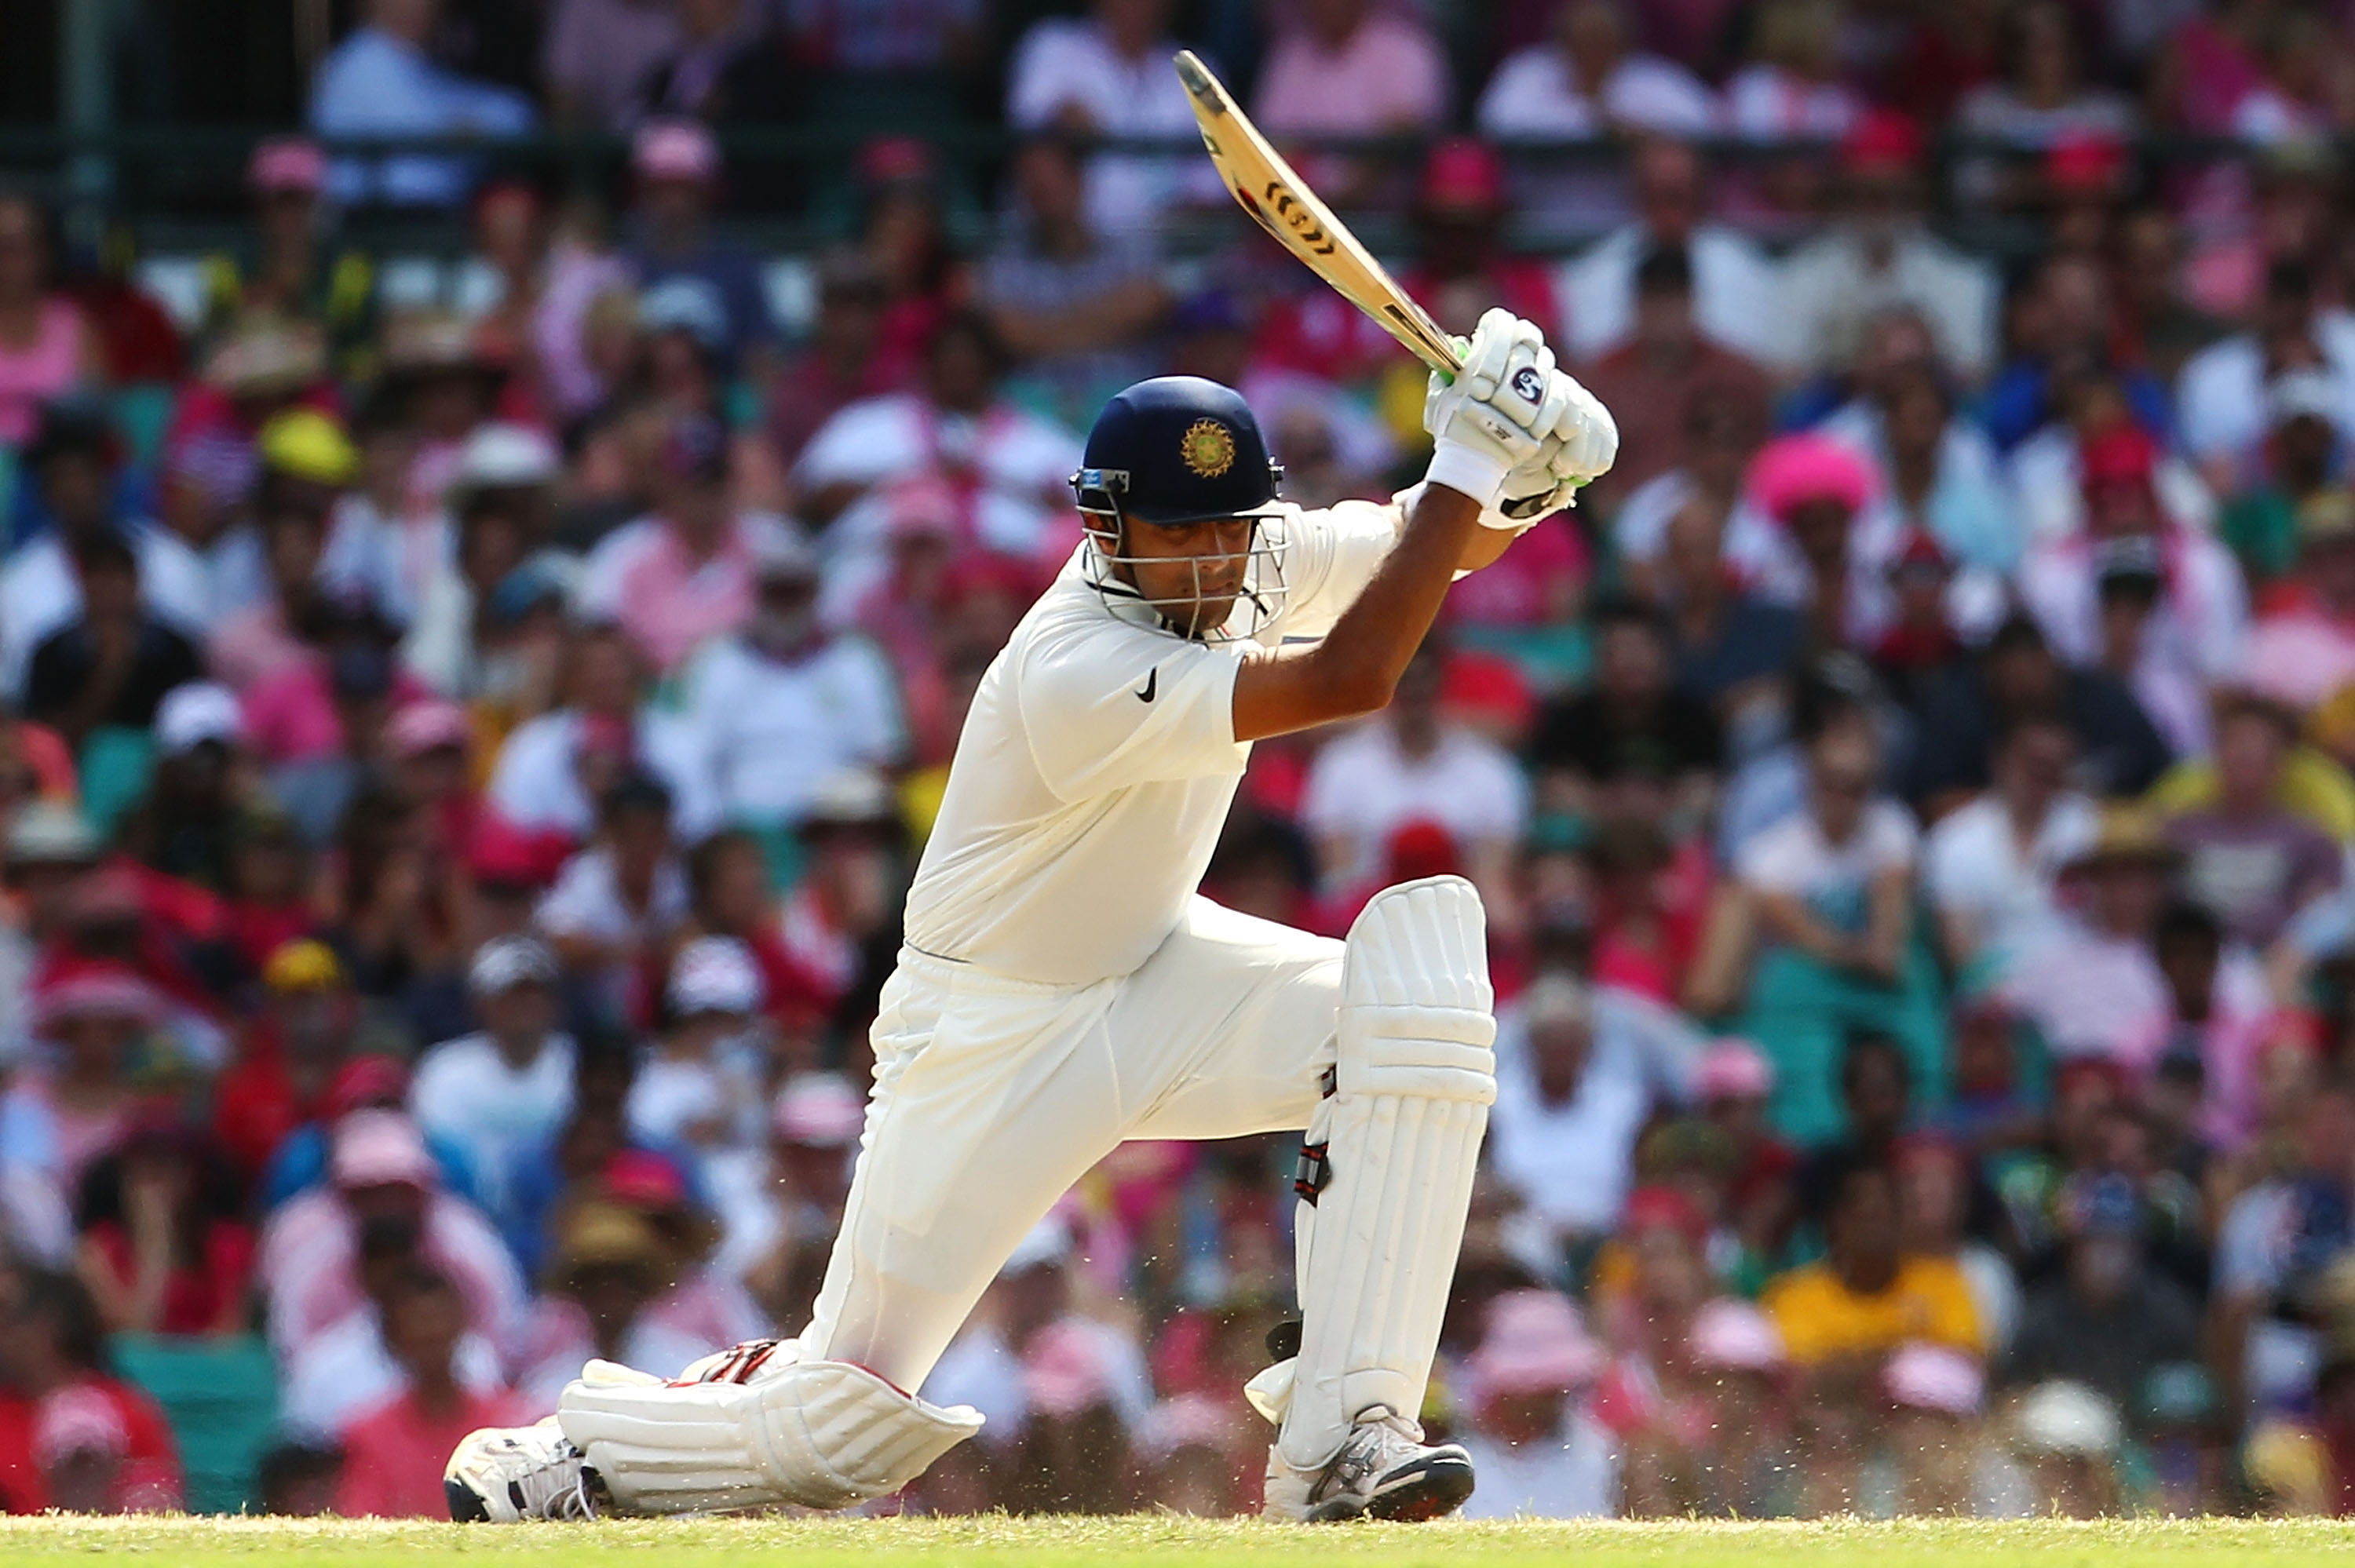 15 Stats About Rahul Dravid You Won't Find in Newspapers ...